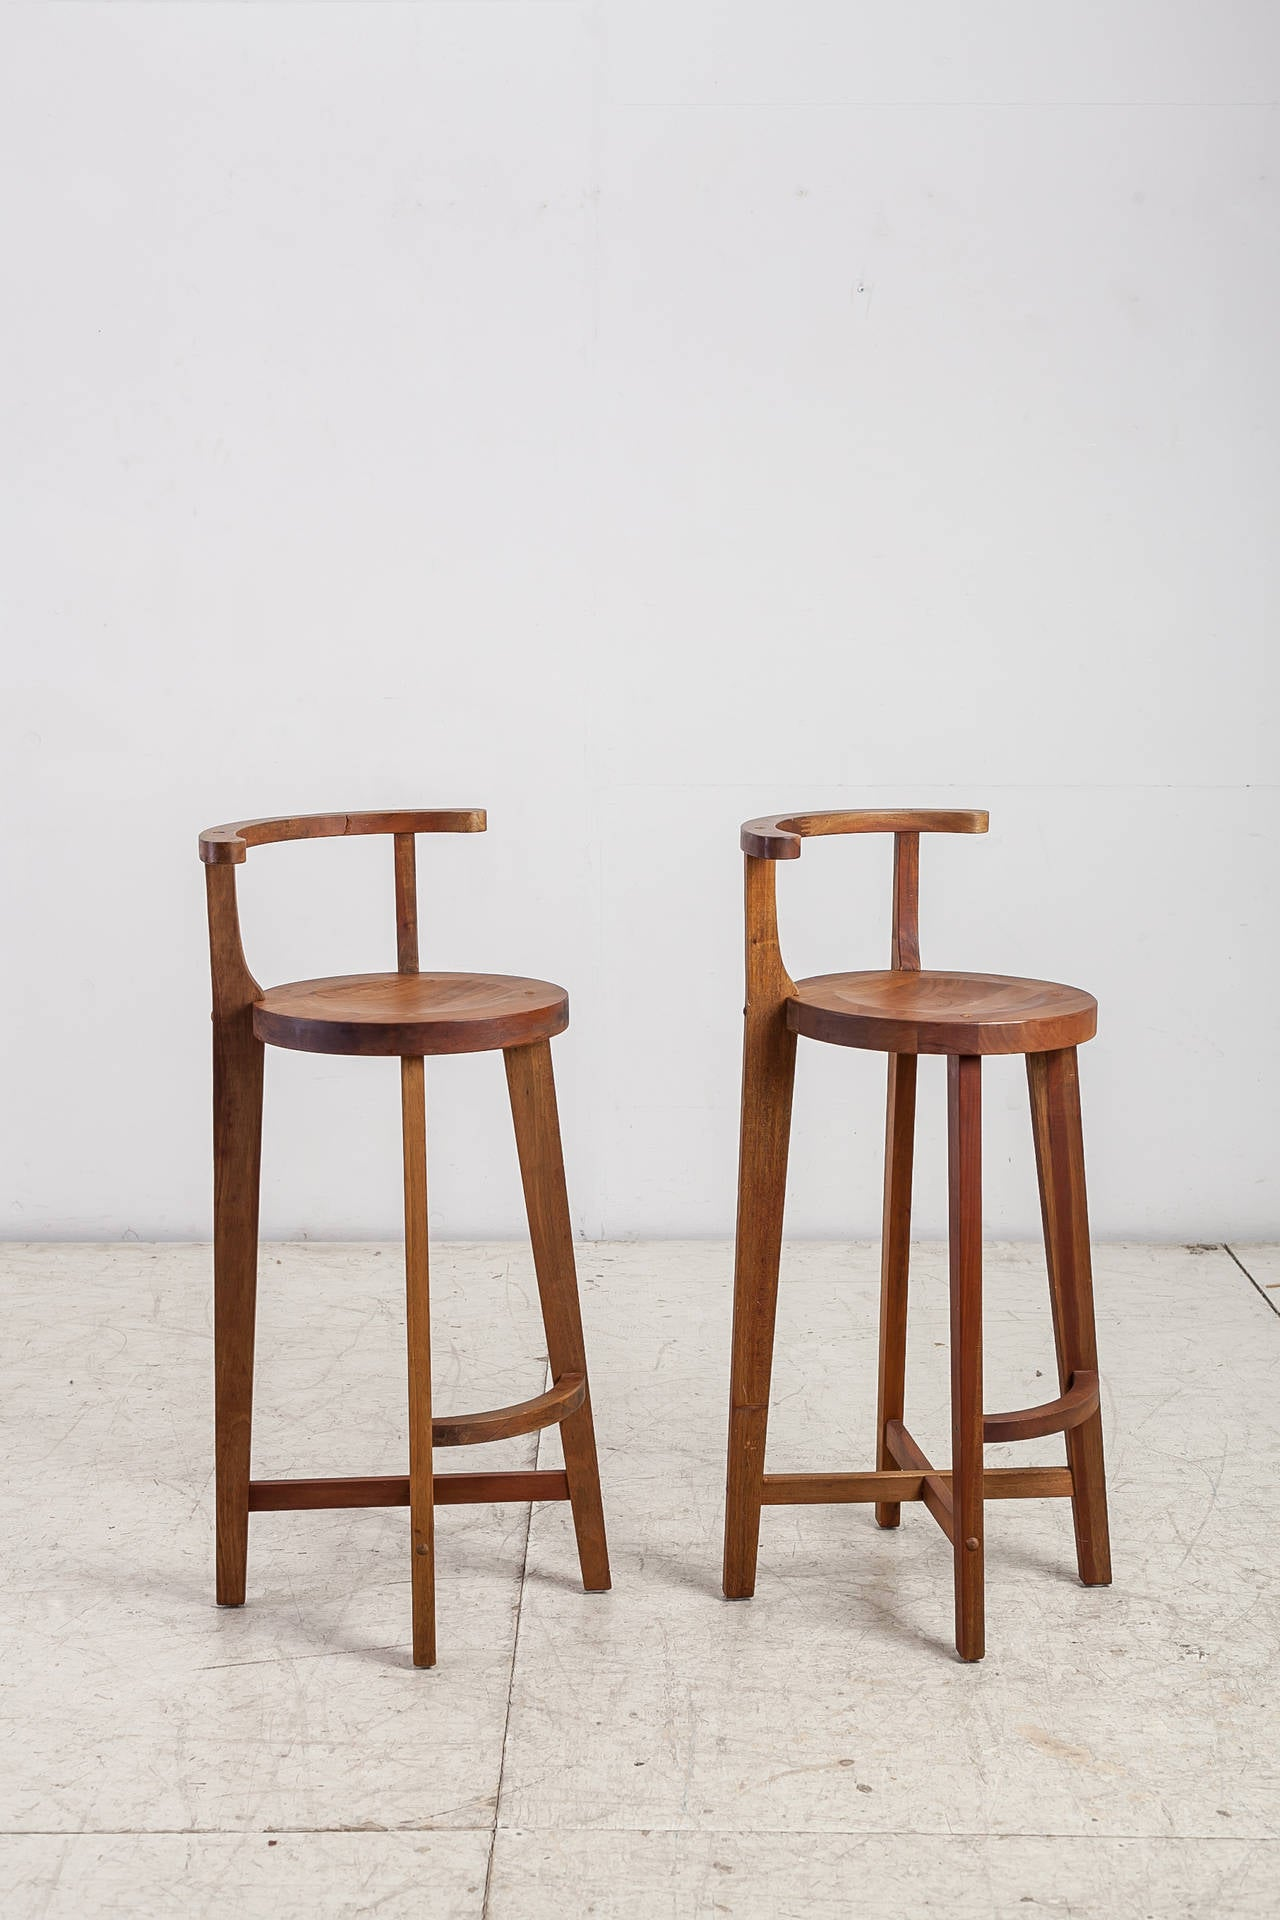 wooden bar stool chairs ergonomic chair harvey norman pair studio crafted stools with rounded back